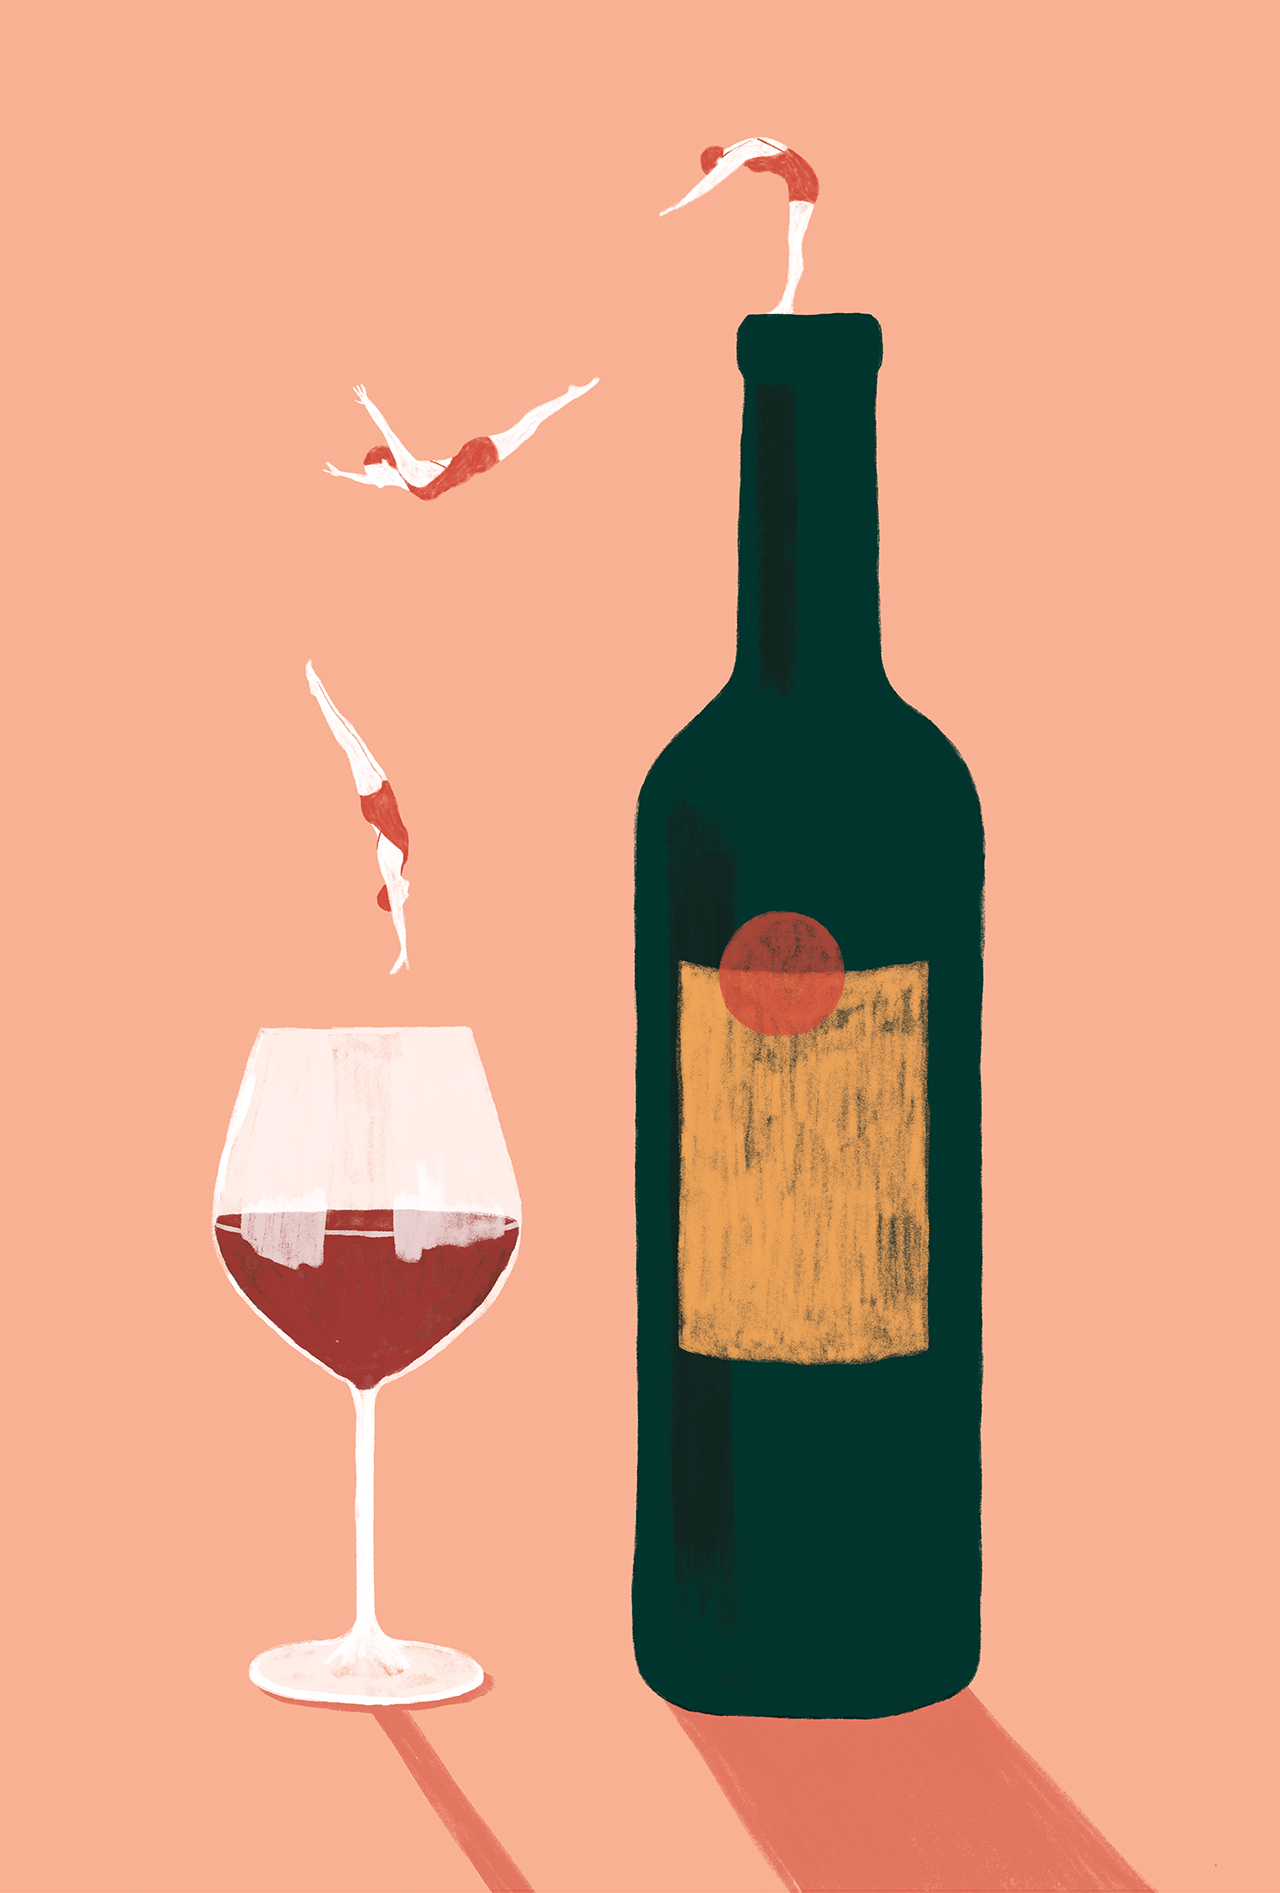 Digital illustration of three women diving in a bottle of wine